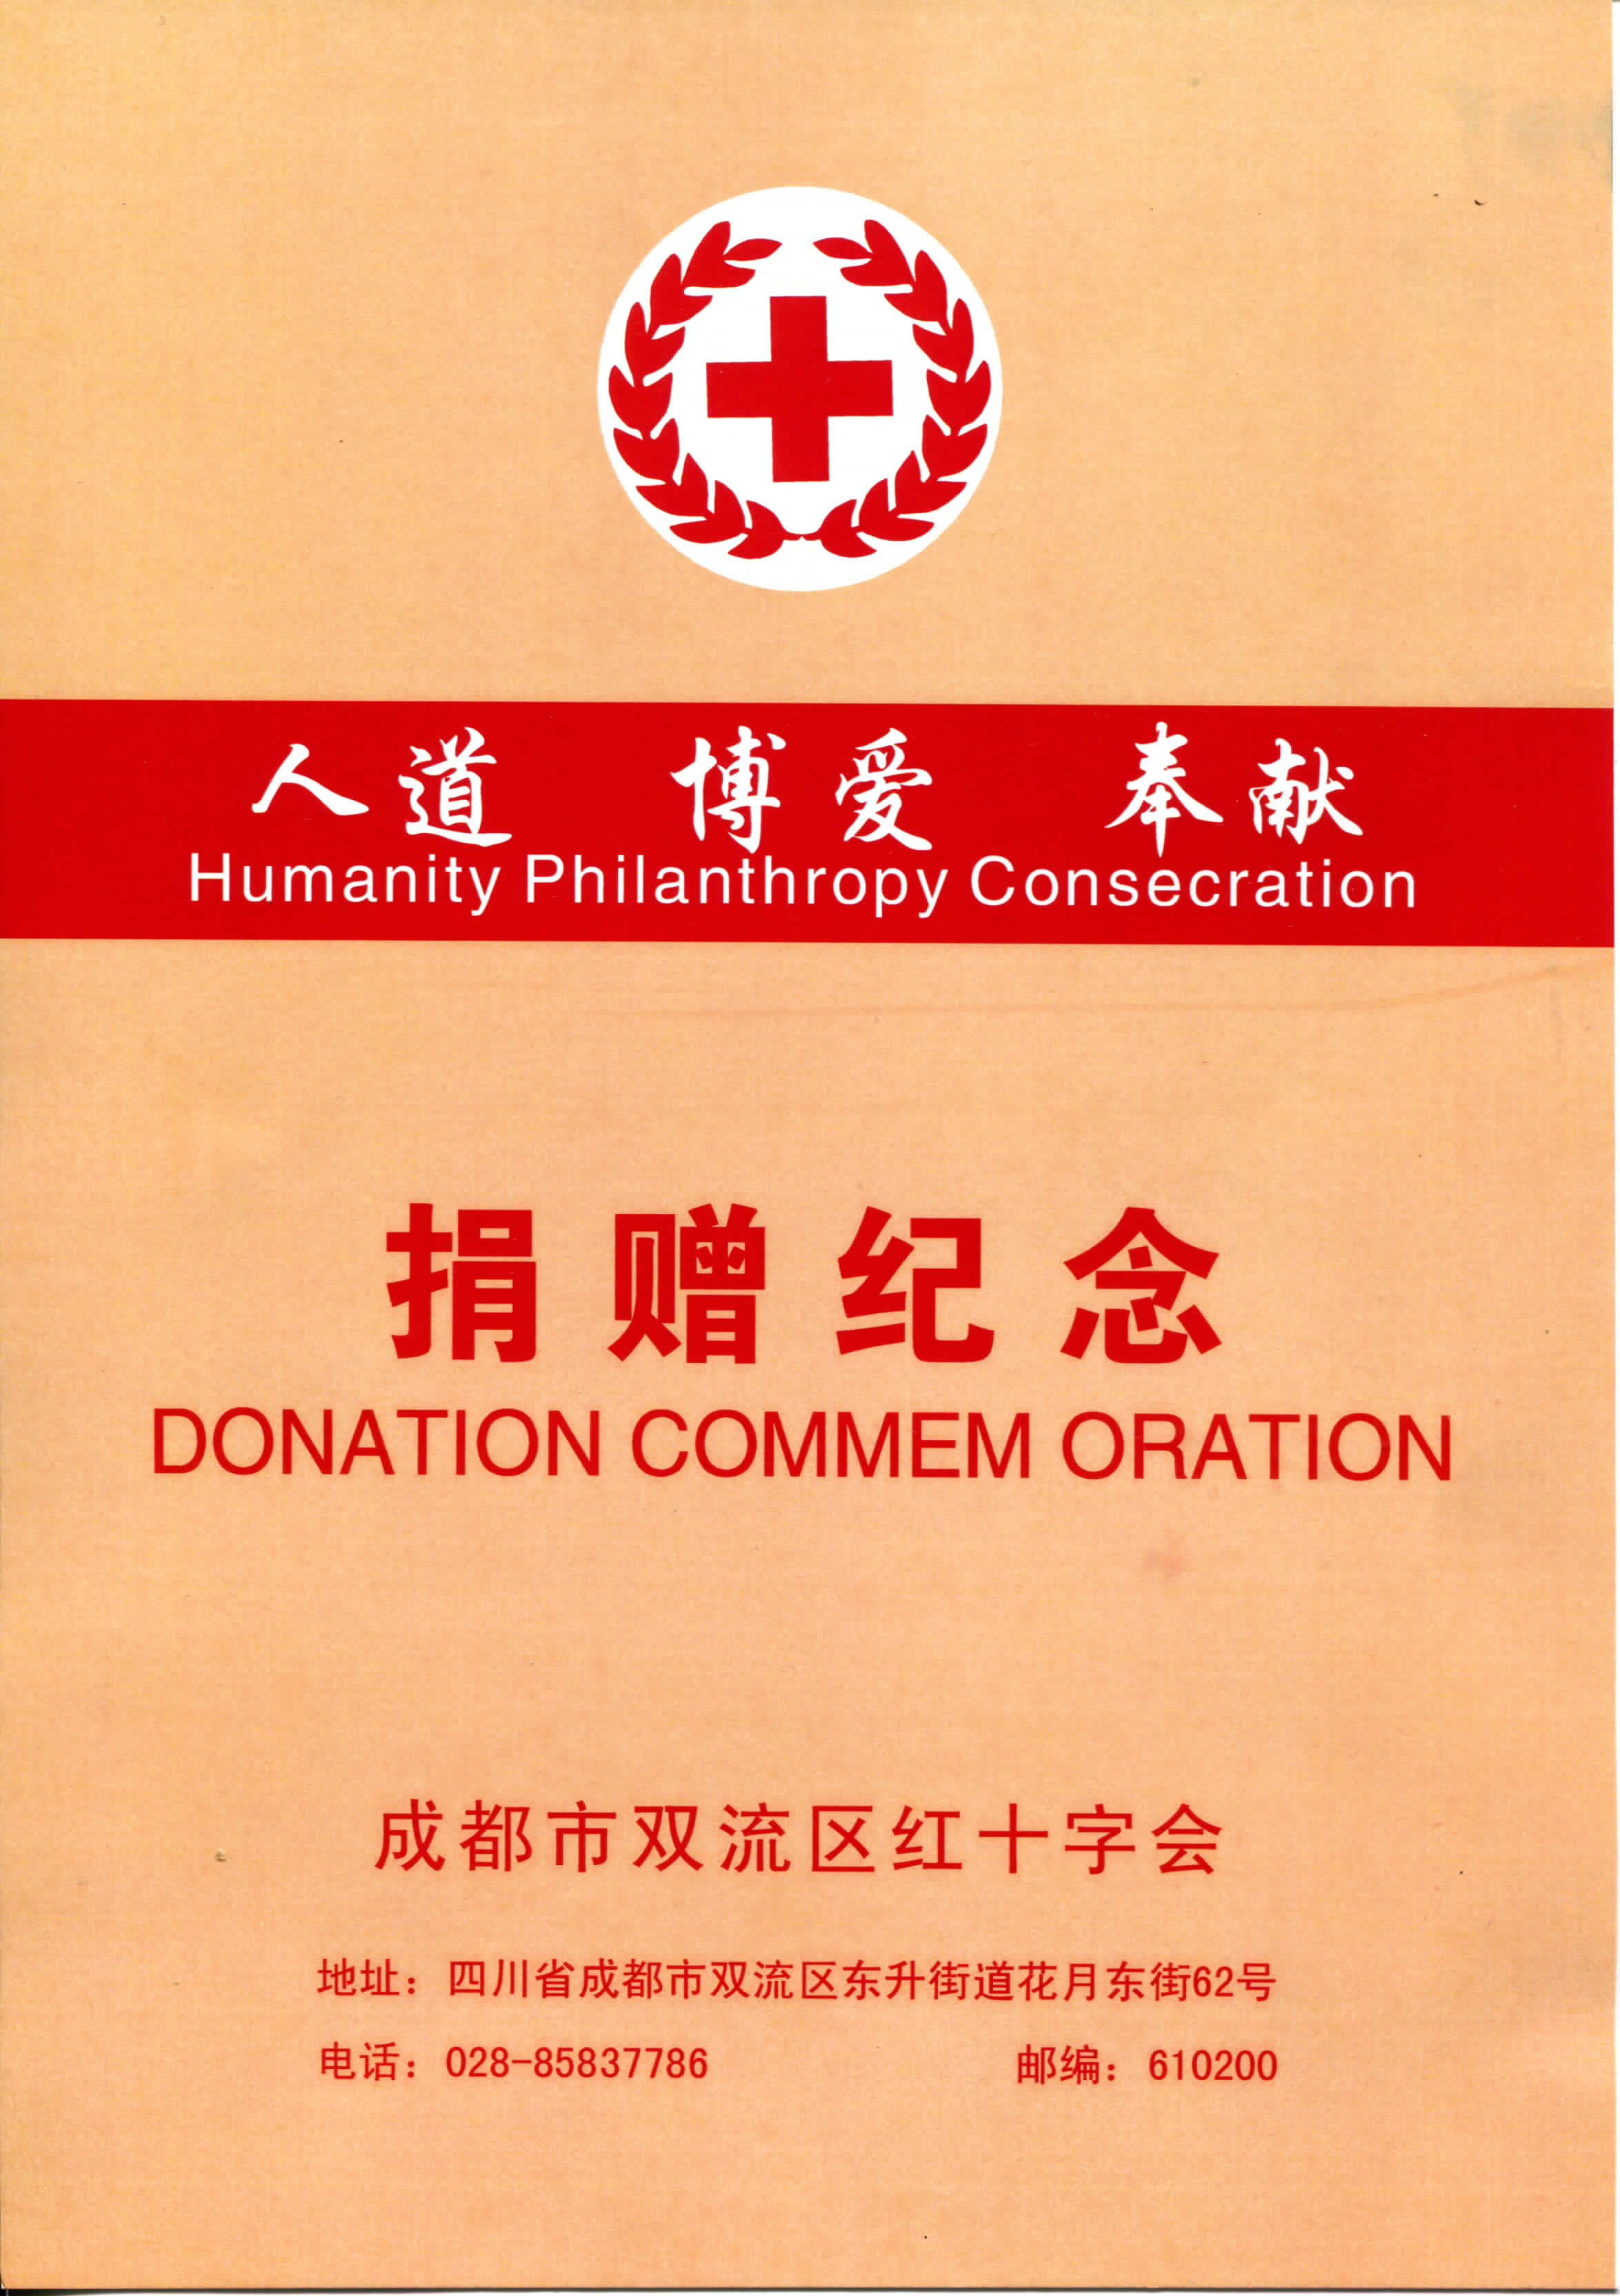 REACH donated RMB60,000 to the Red Cross